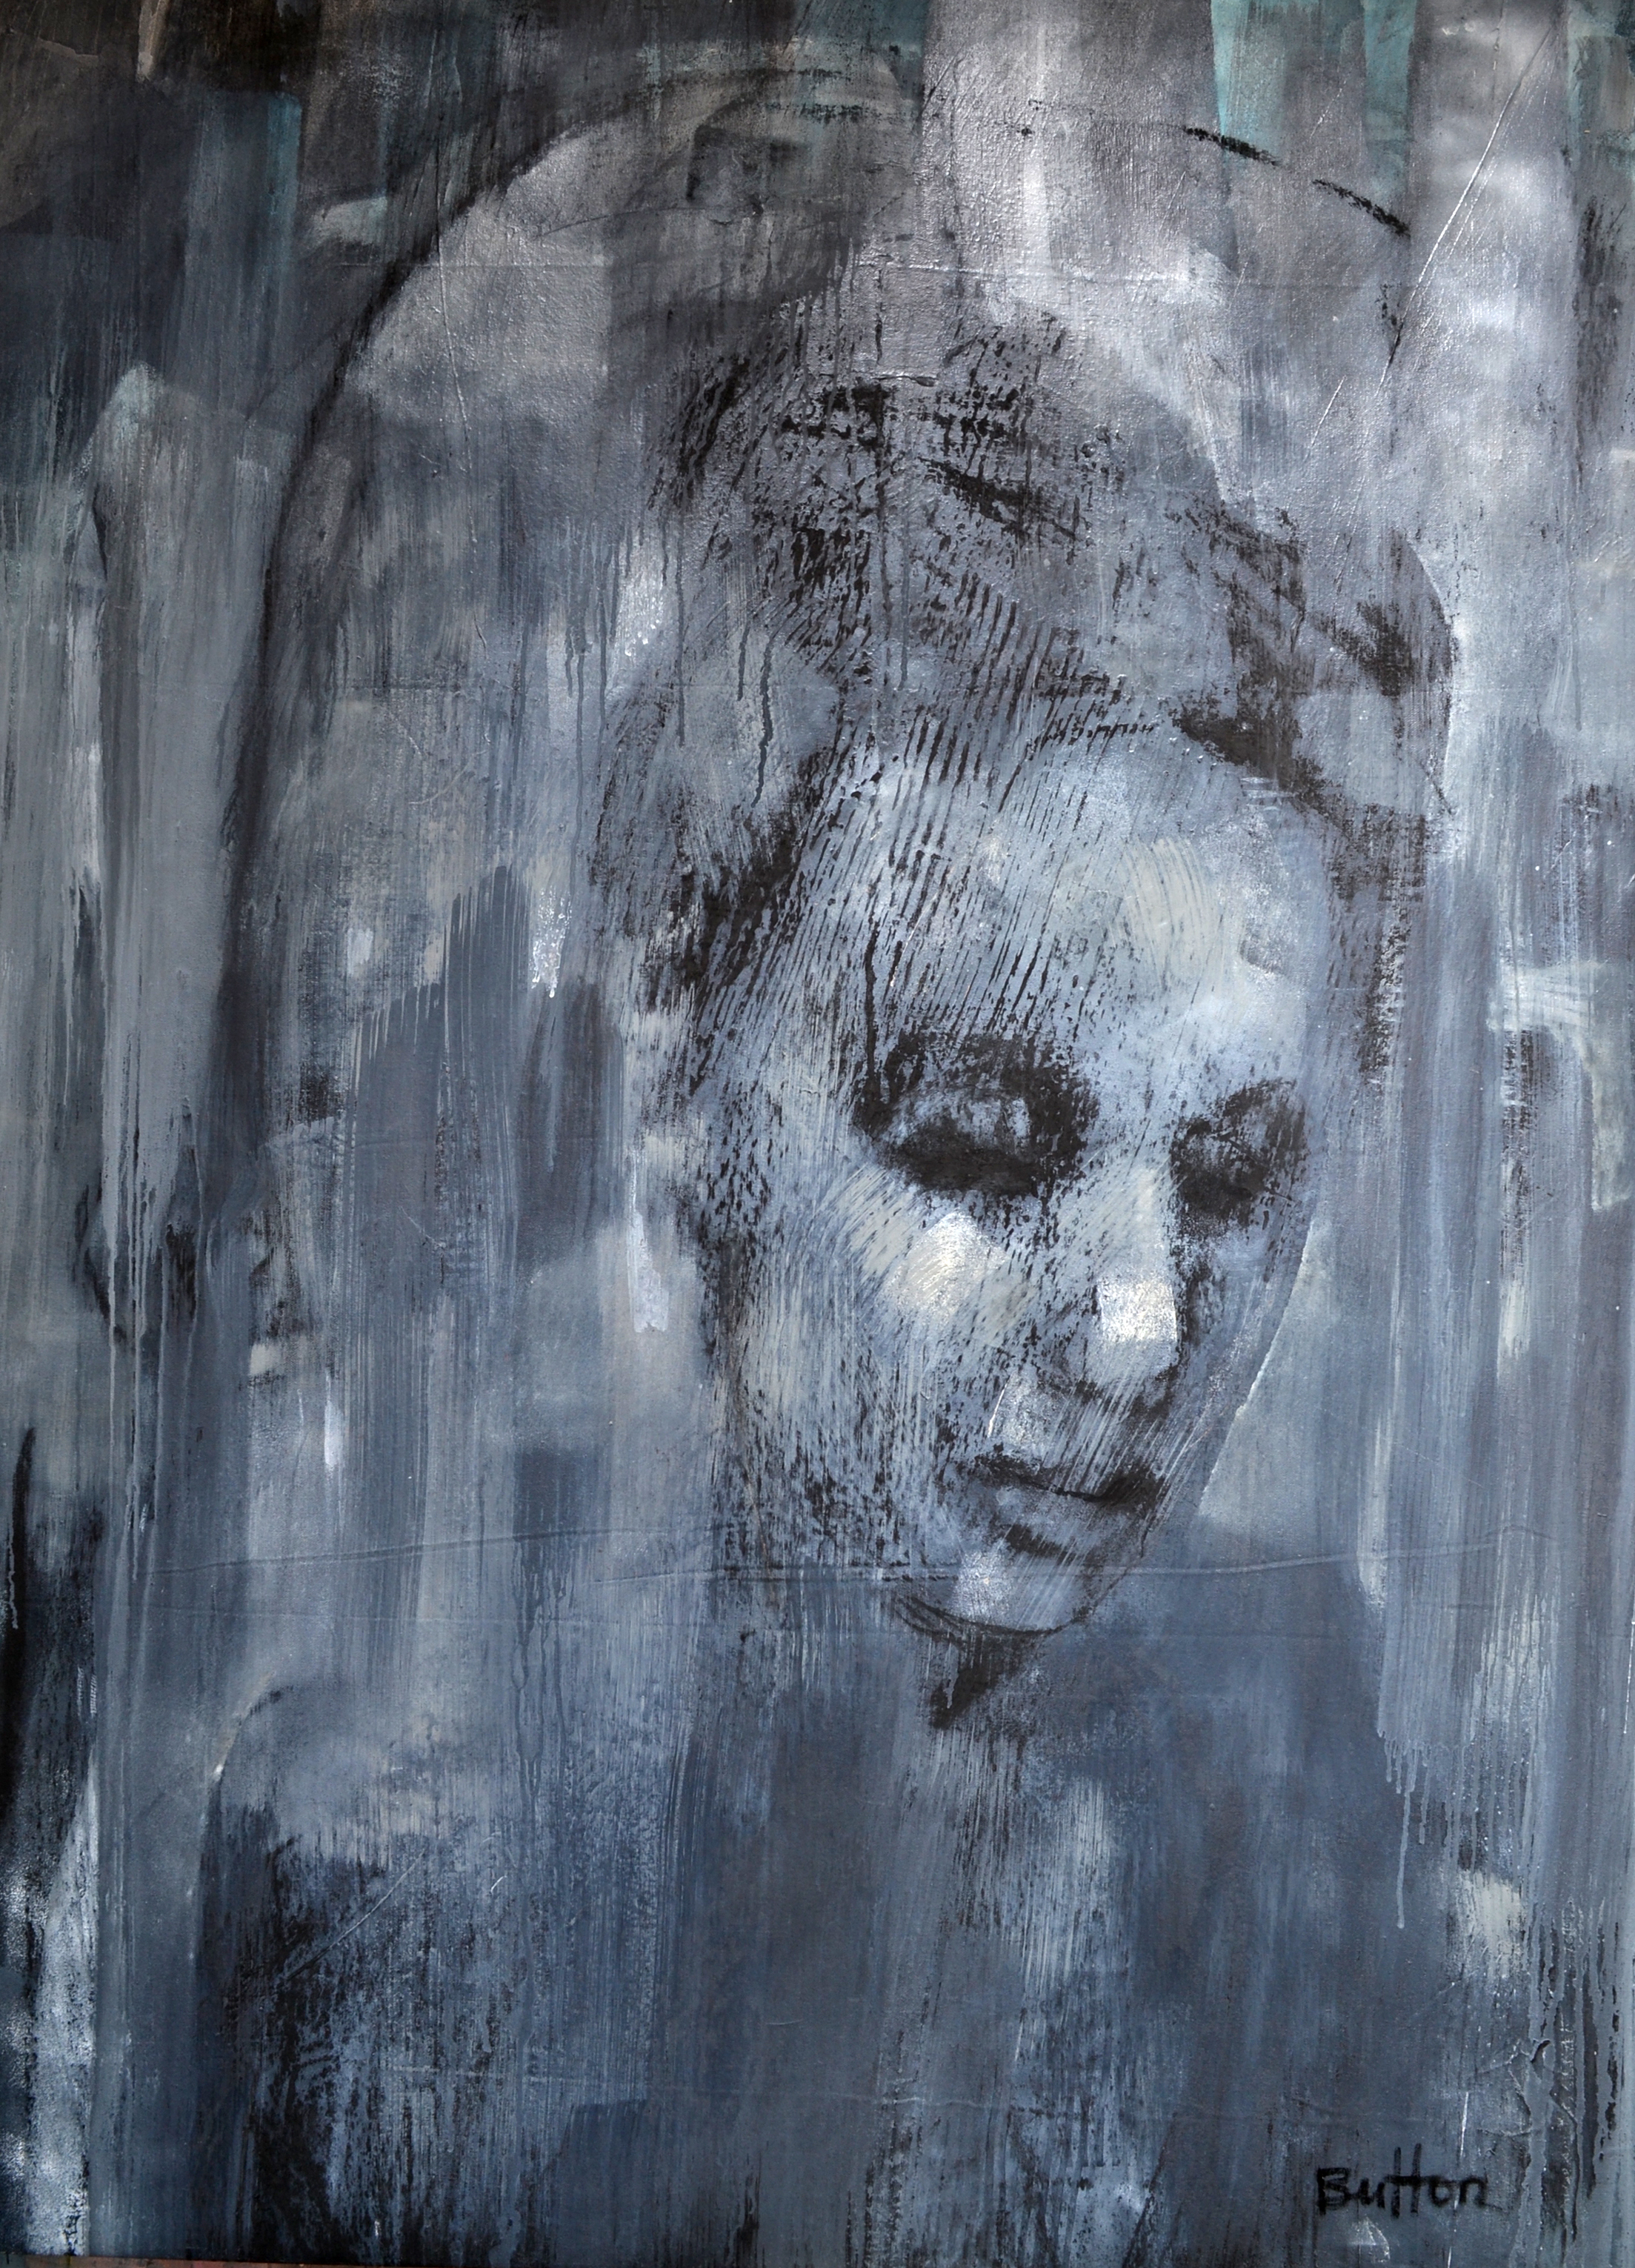 JUST SLIPPING BY £4750 Acrylic, graphite, charcoal,oil, canvas 72 x 52 ins (182.88 x 132.08 cms)